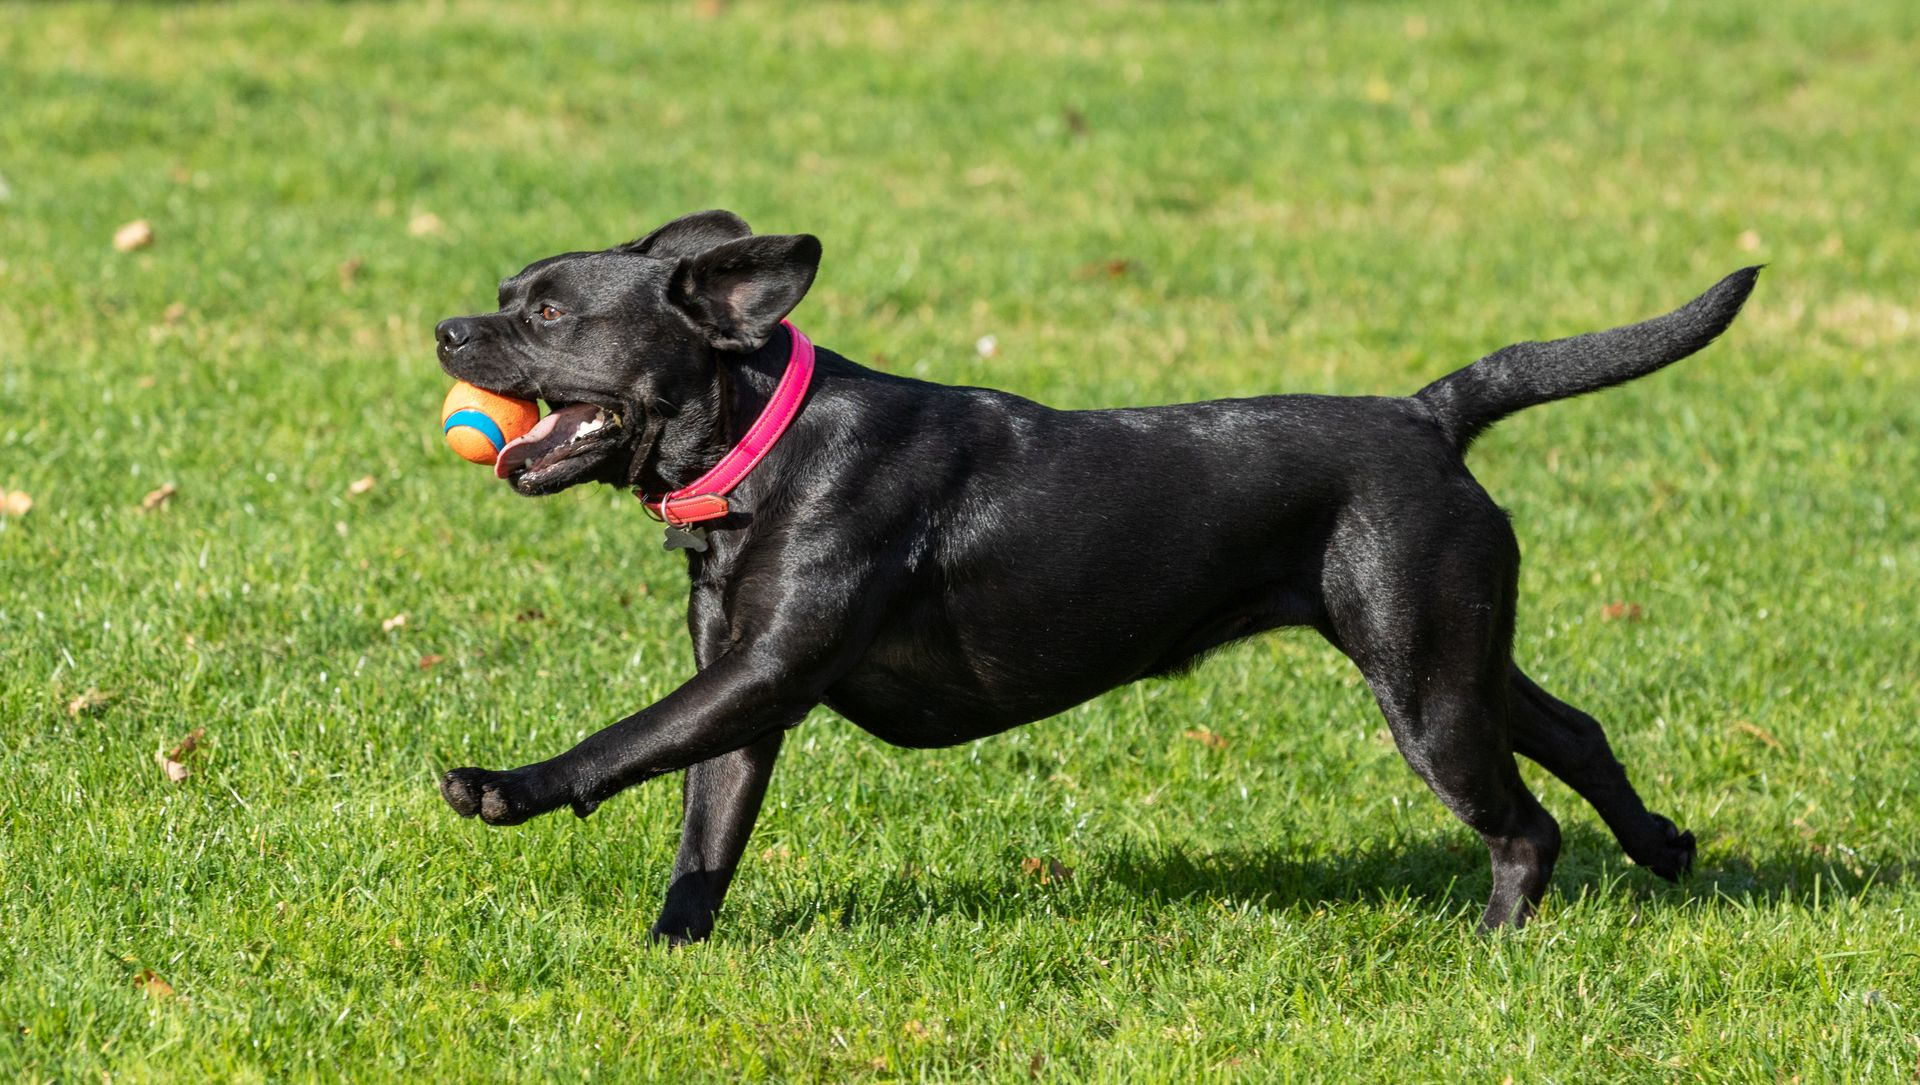 A black dog runs with a ball in its mouth.